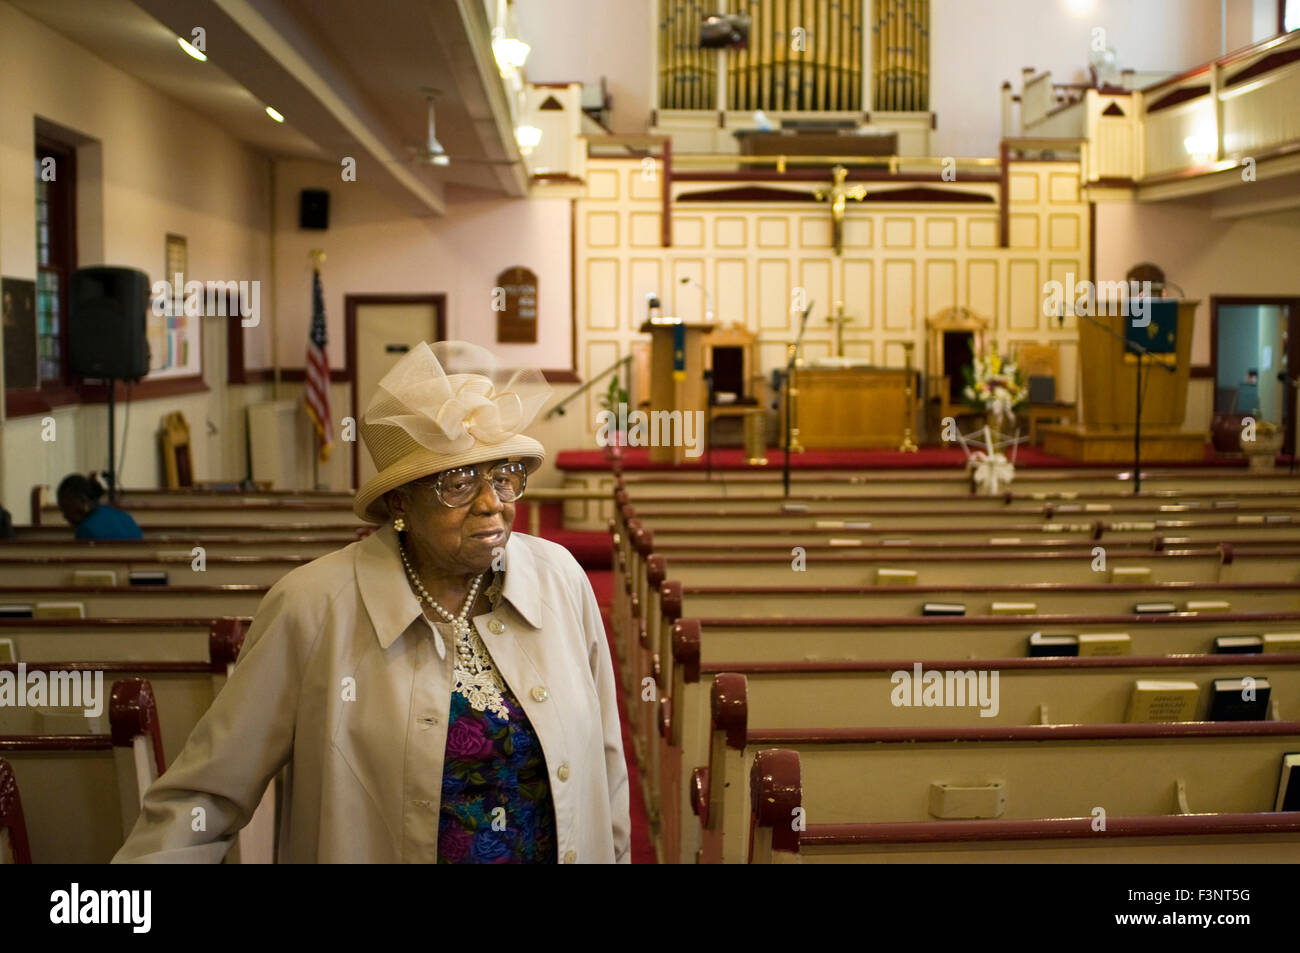 A parishioner leaves mass. Union Congregational Church. 60 138th Street. Phone 212-926-2549. St. Mark The Evangelist - Stock Image